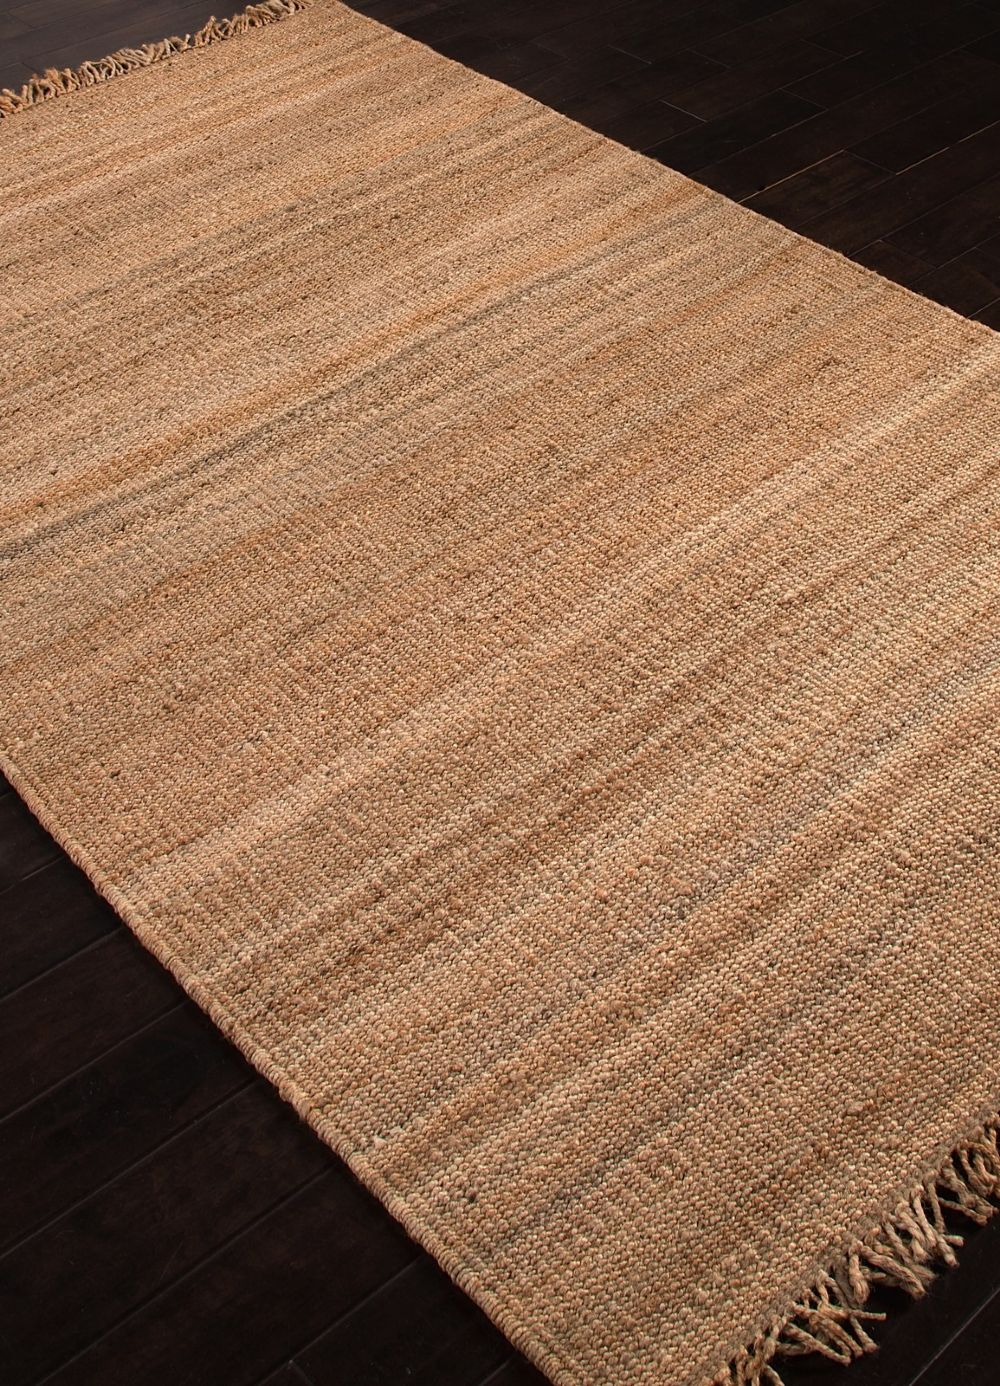 jaipur rugged natural fiber area rug collection